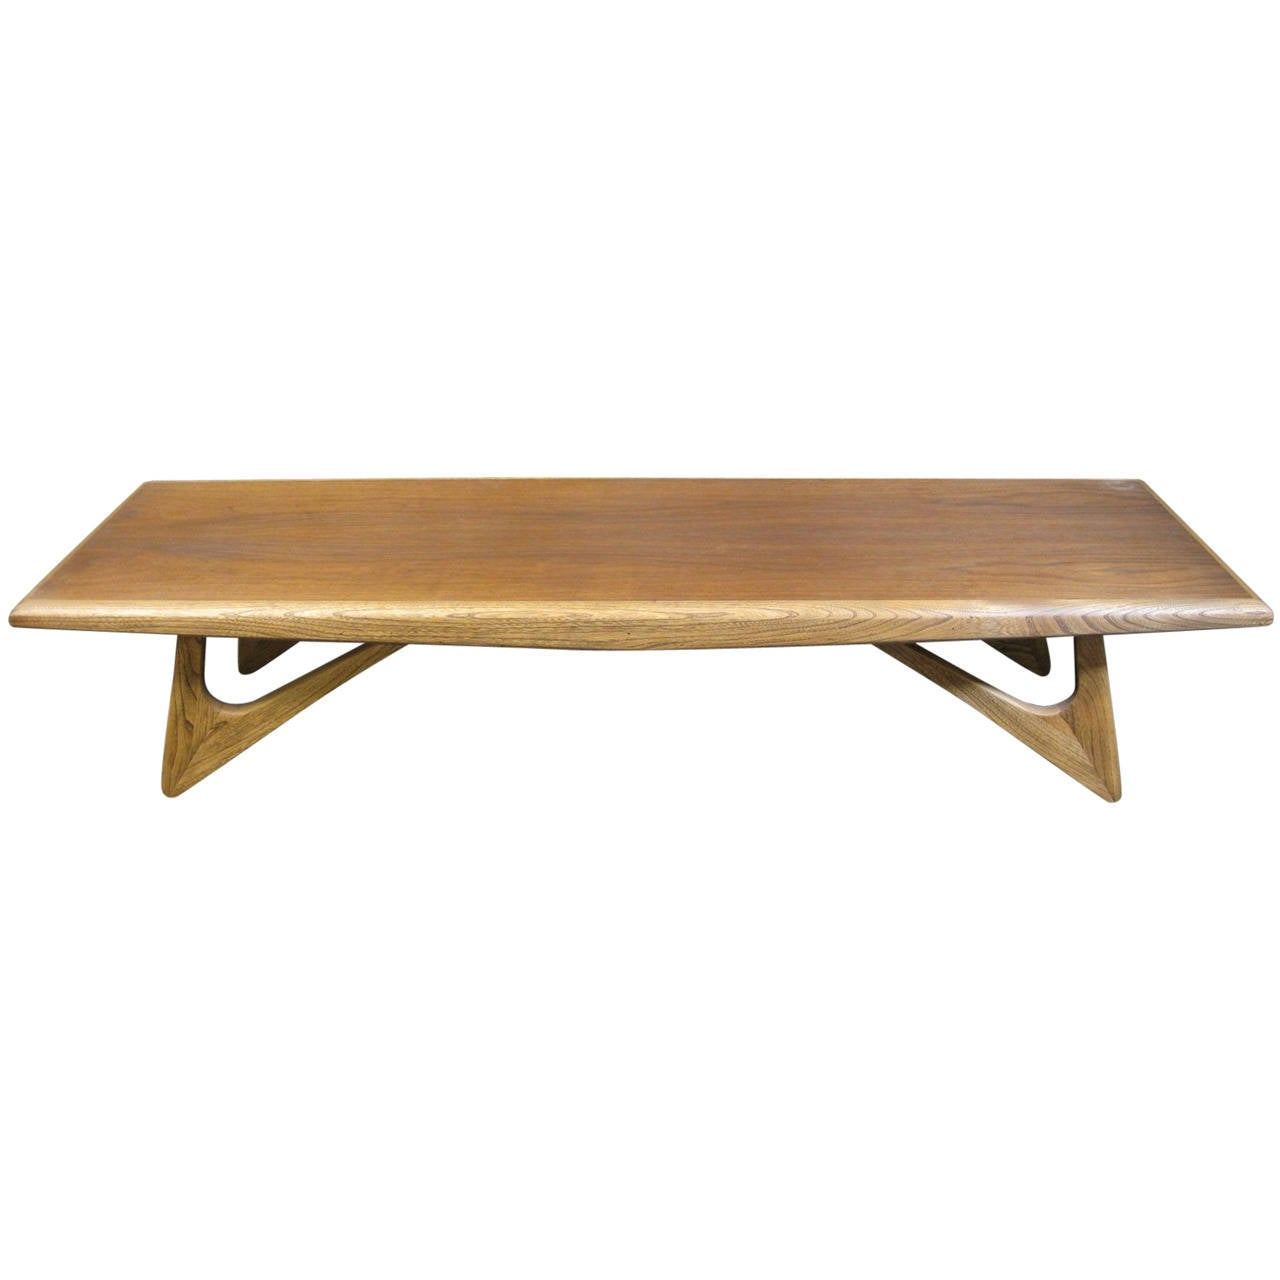 Adrian Pearsall Style Coffee Table Mid Century Modern At 1stdibs